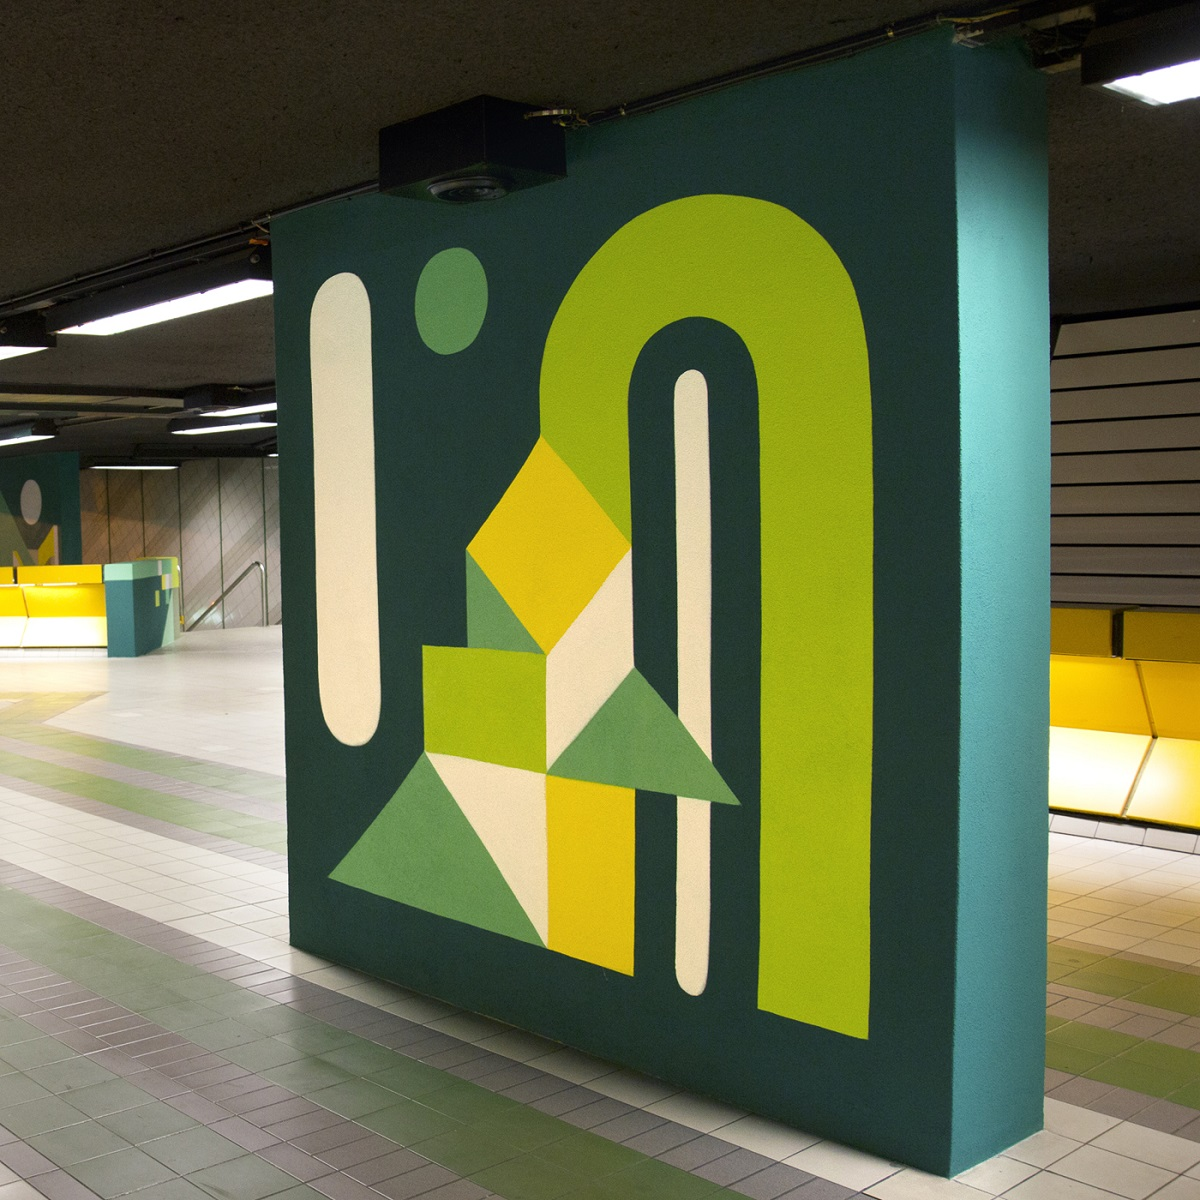 nelio-new-mural-at-station-mermoz-in-lyon-05